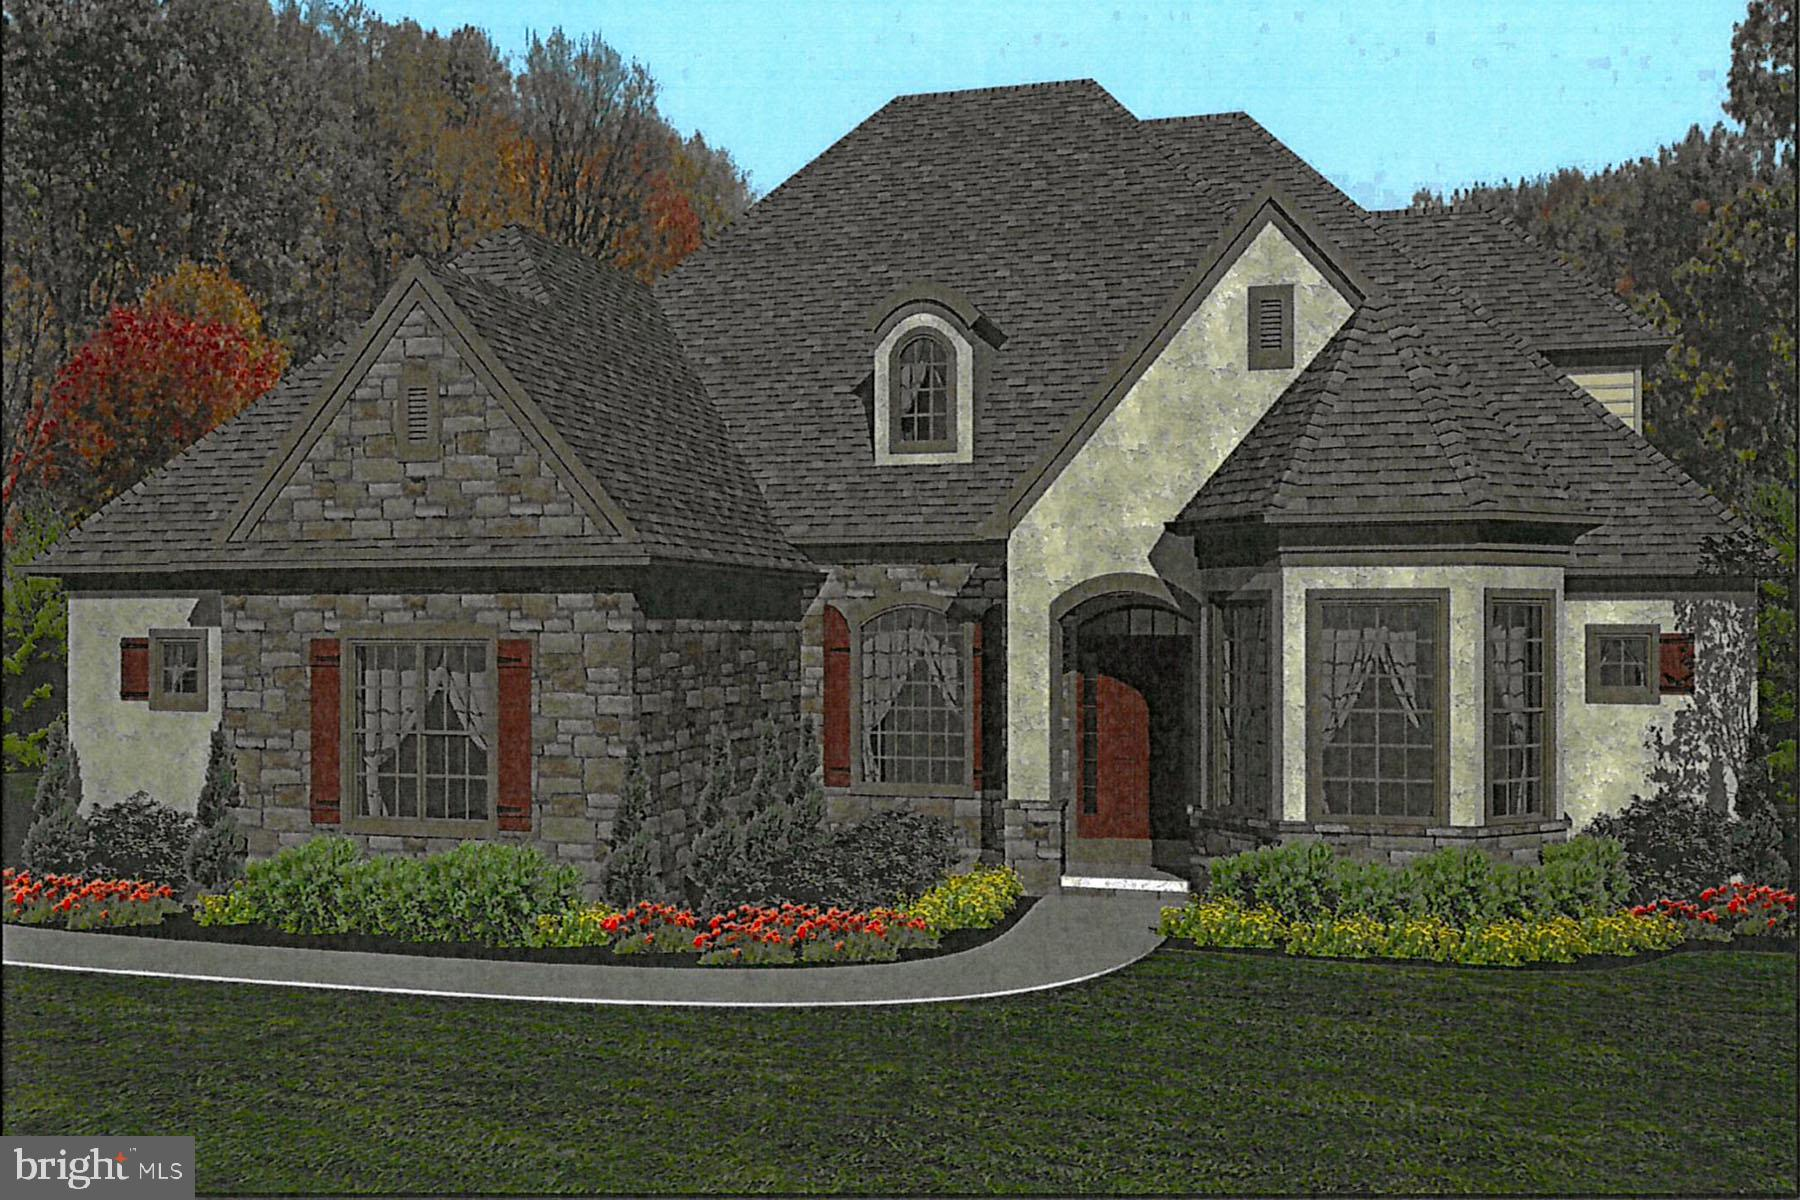 Mansfield Model is a 2-story, 5 bedroom home